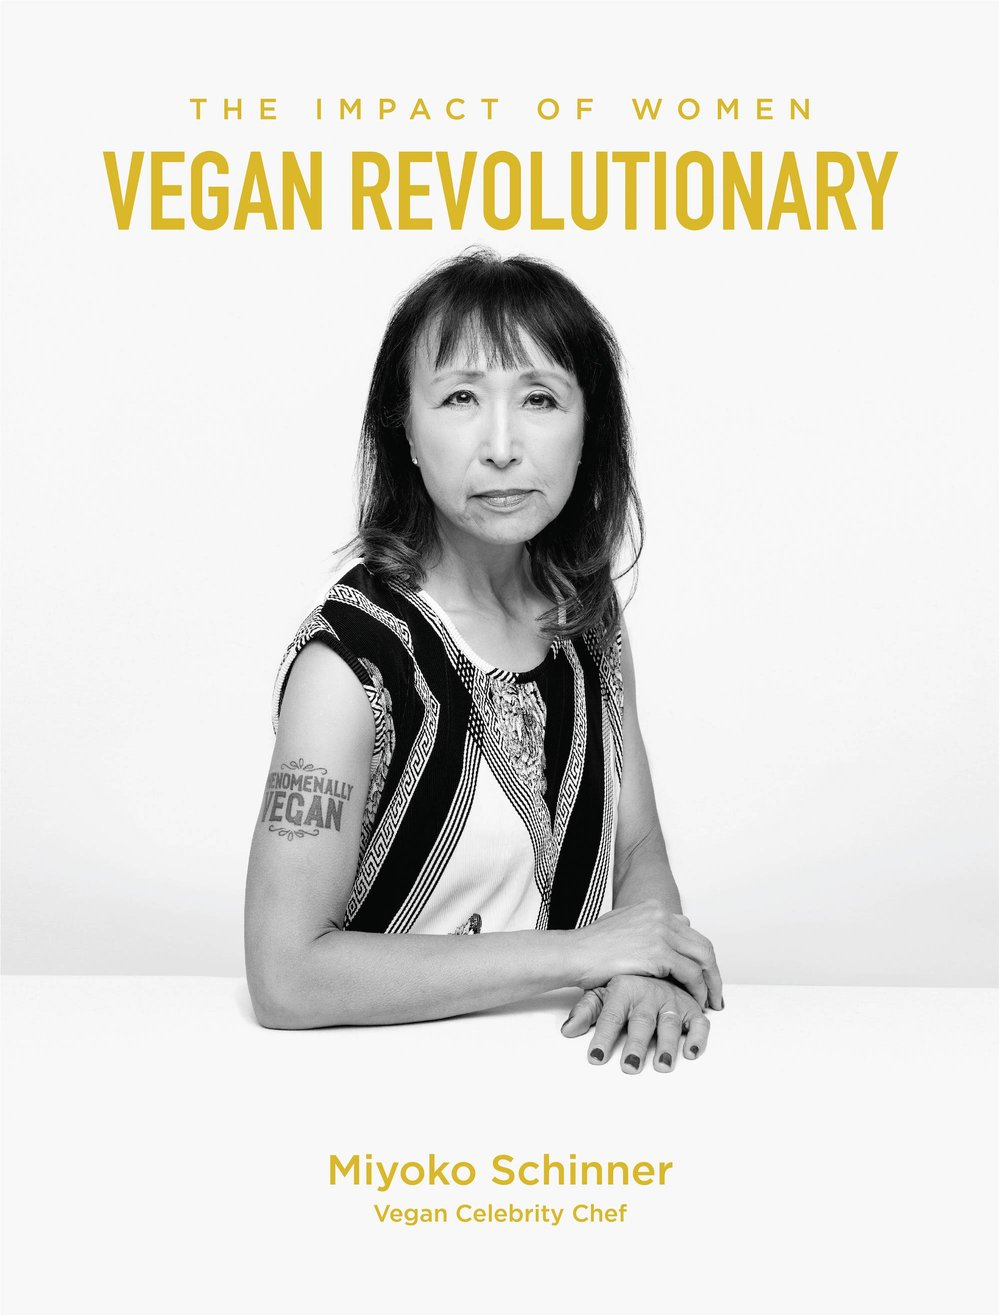 Miyoko Schinner is a Vegan Revolutionary